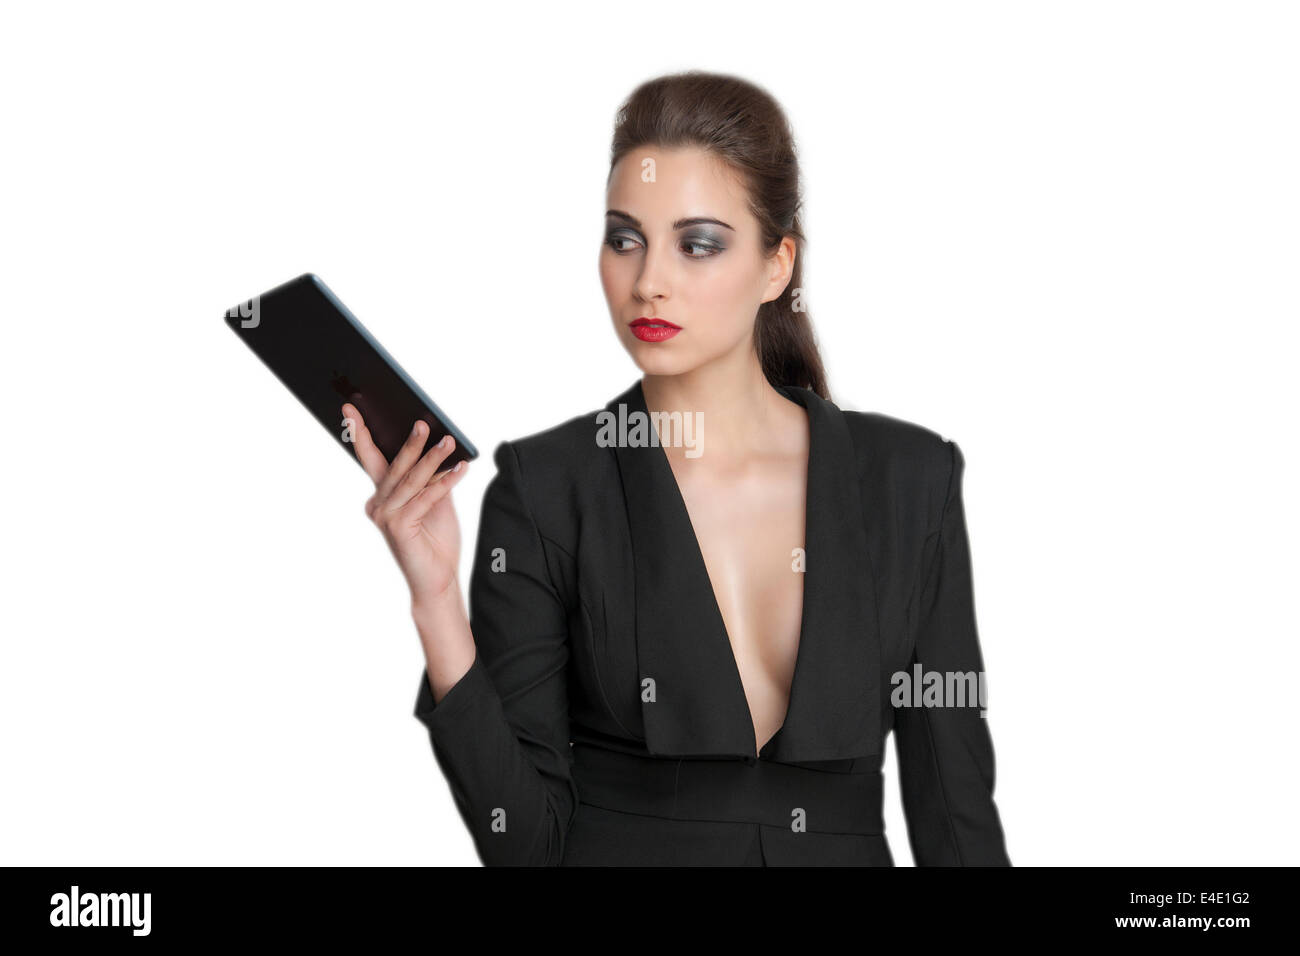 sexy business woman holding an iPad in hand